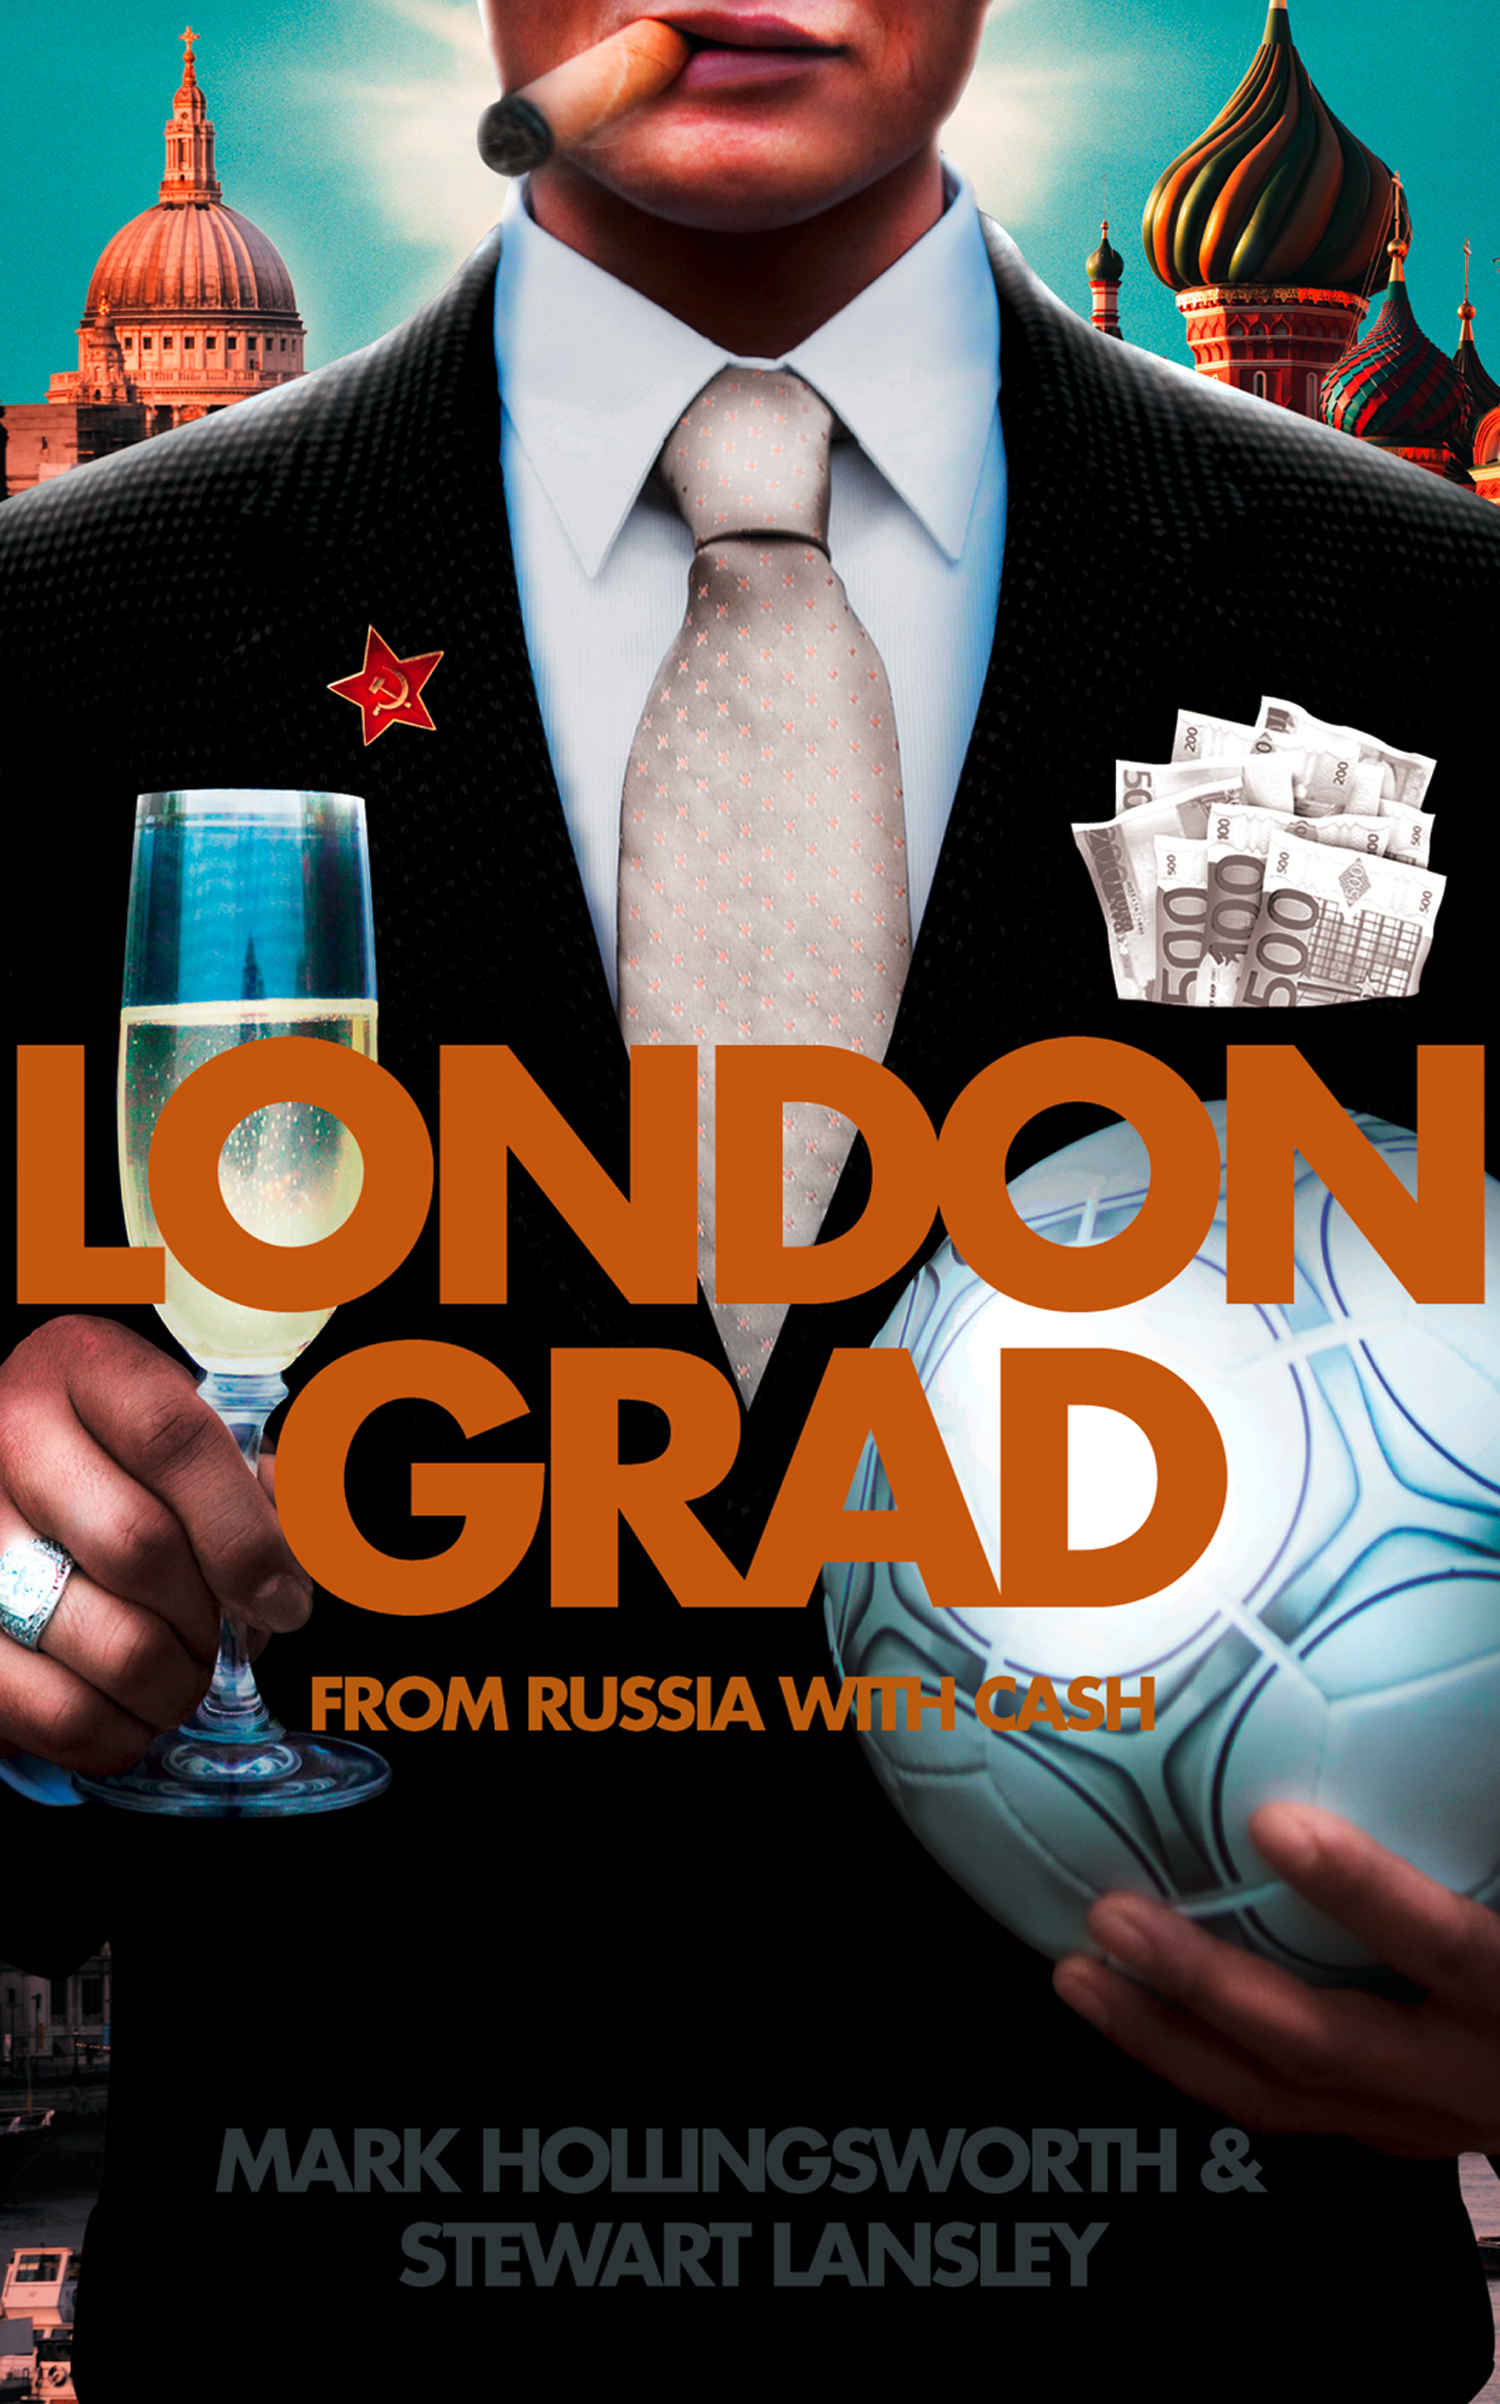 Londongrad: From Russia with Cash; The Inside Story of the Oligarchs